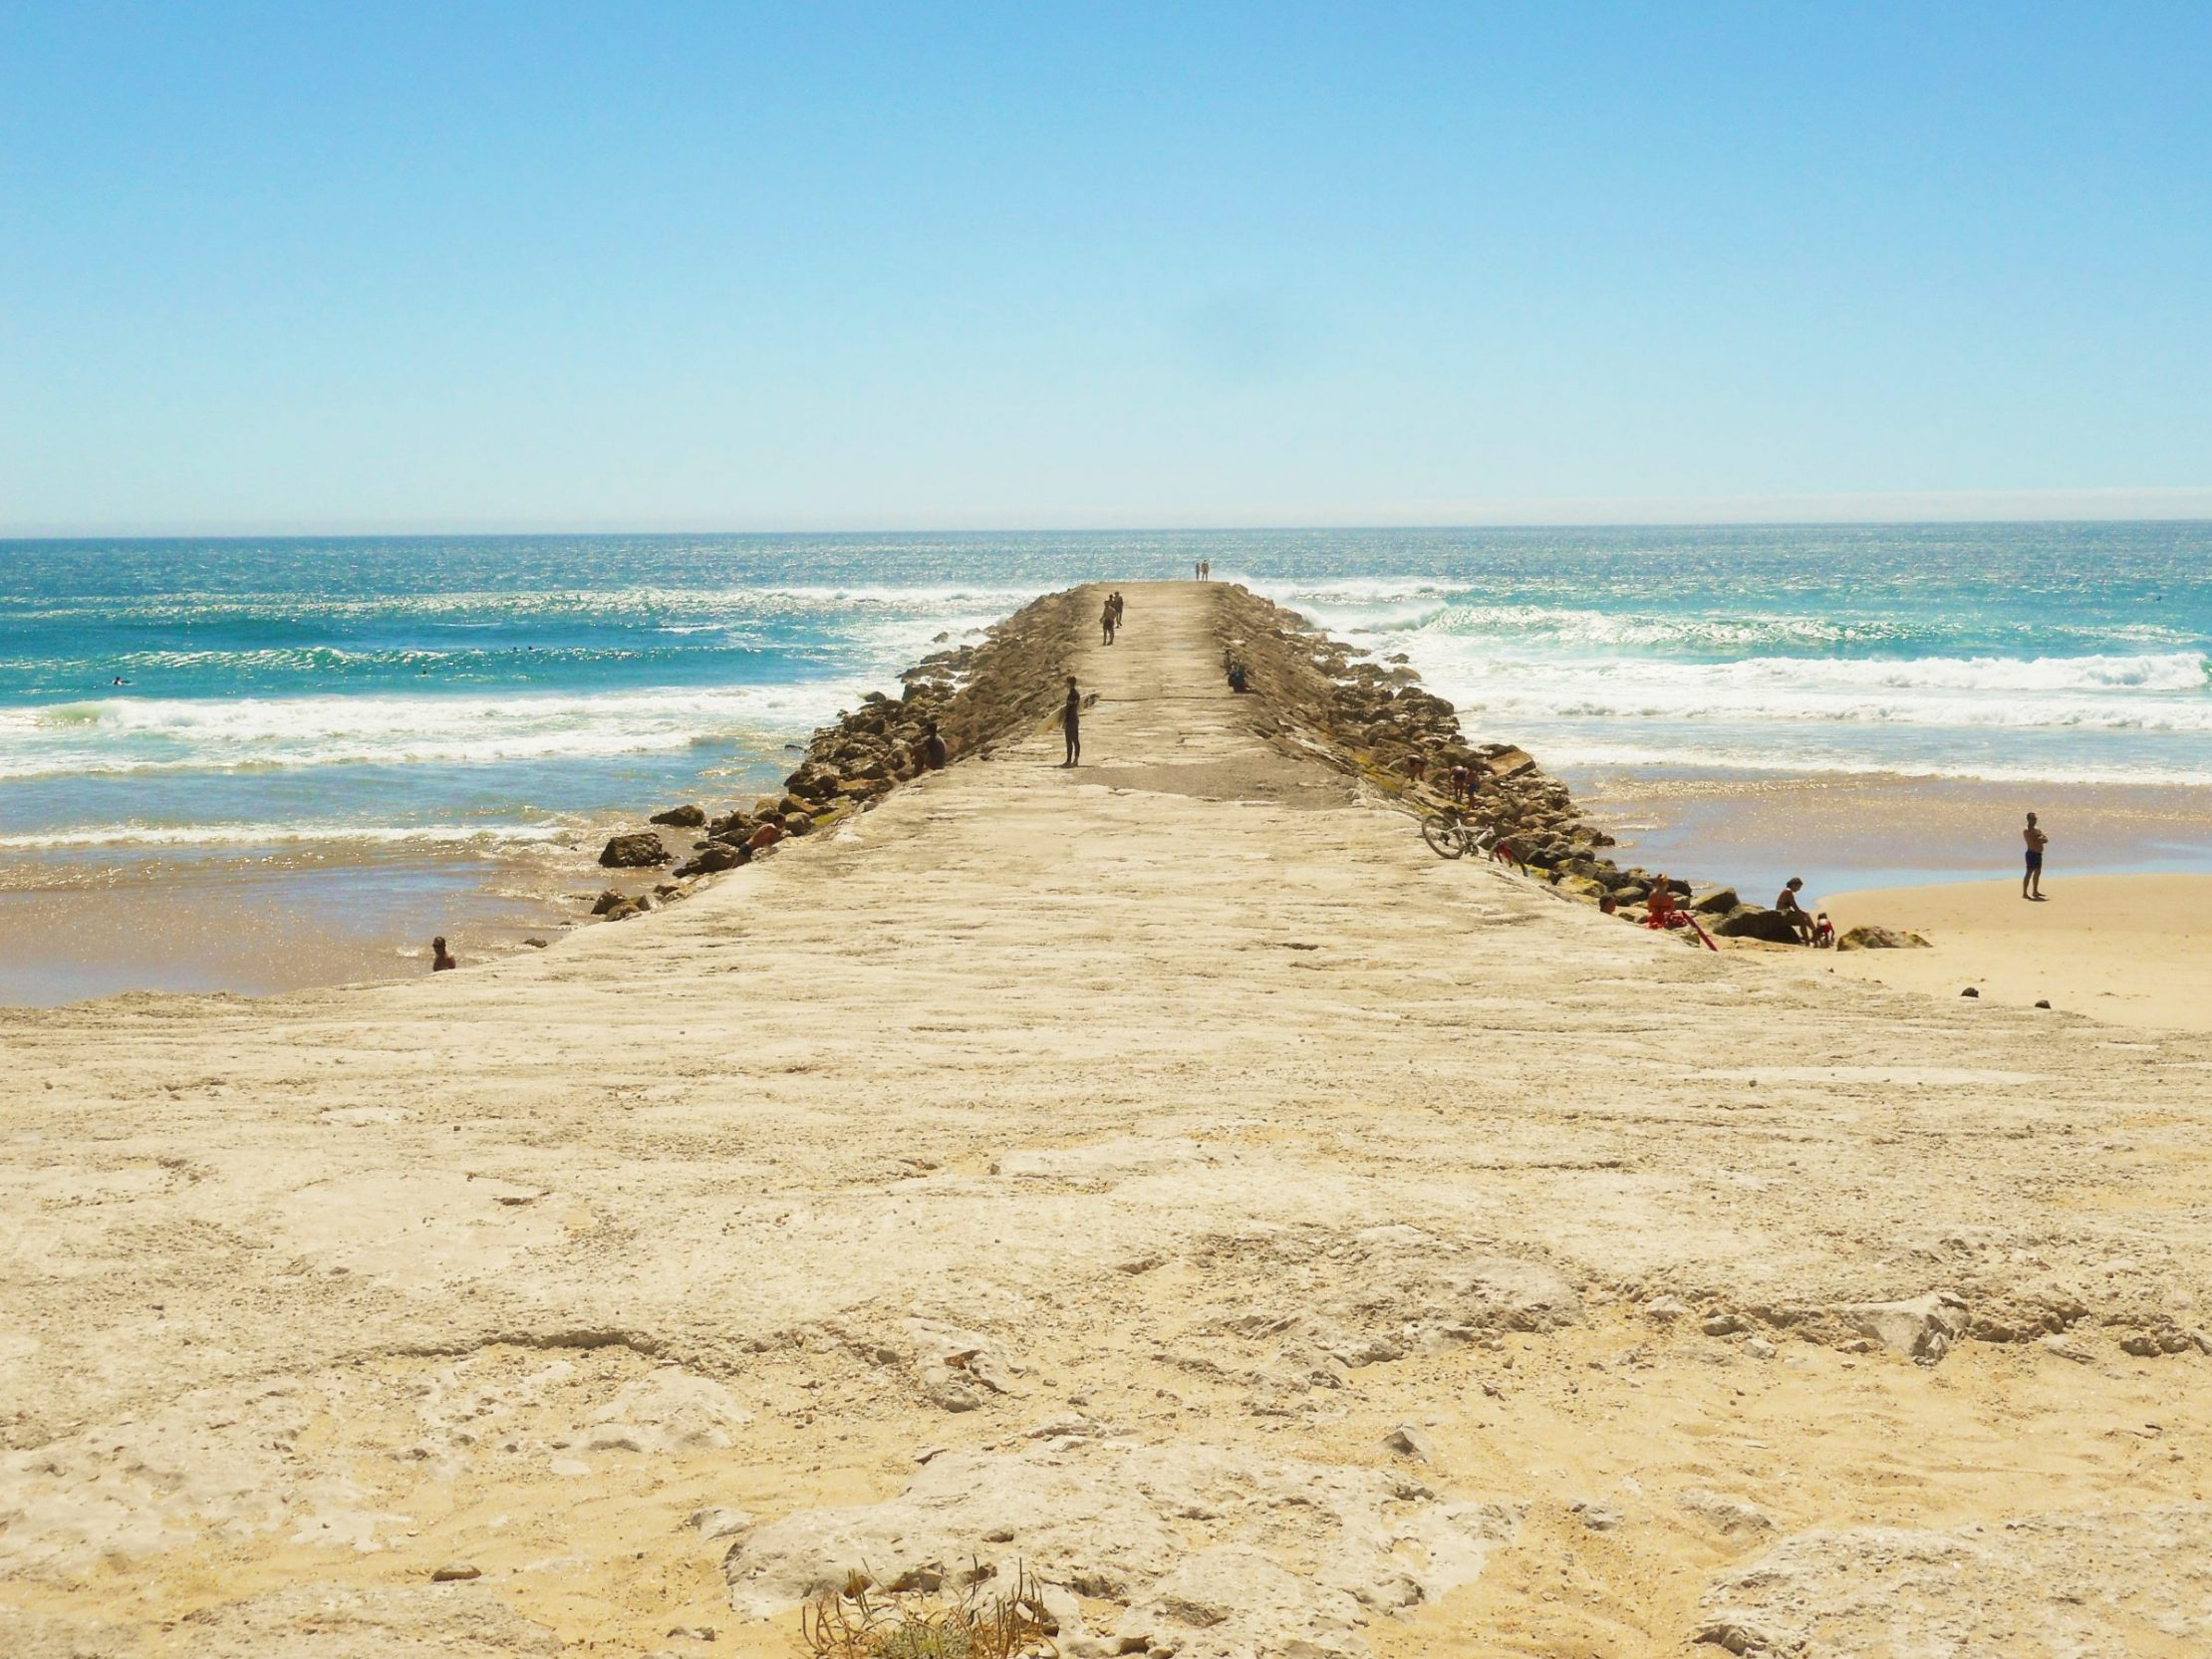 One of pretty piers along Costa da Caparica beaches in Portugal